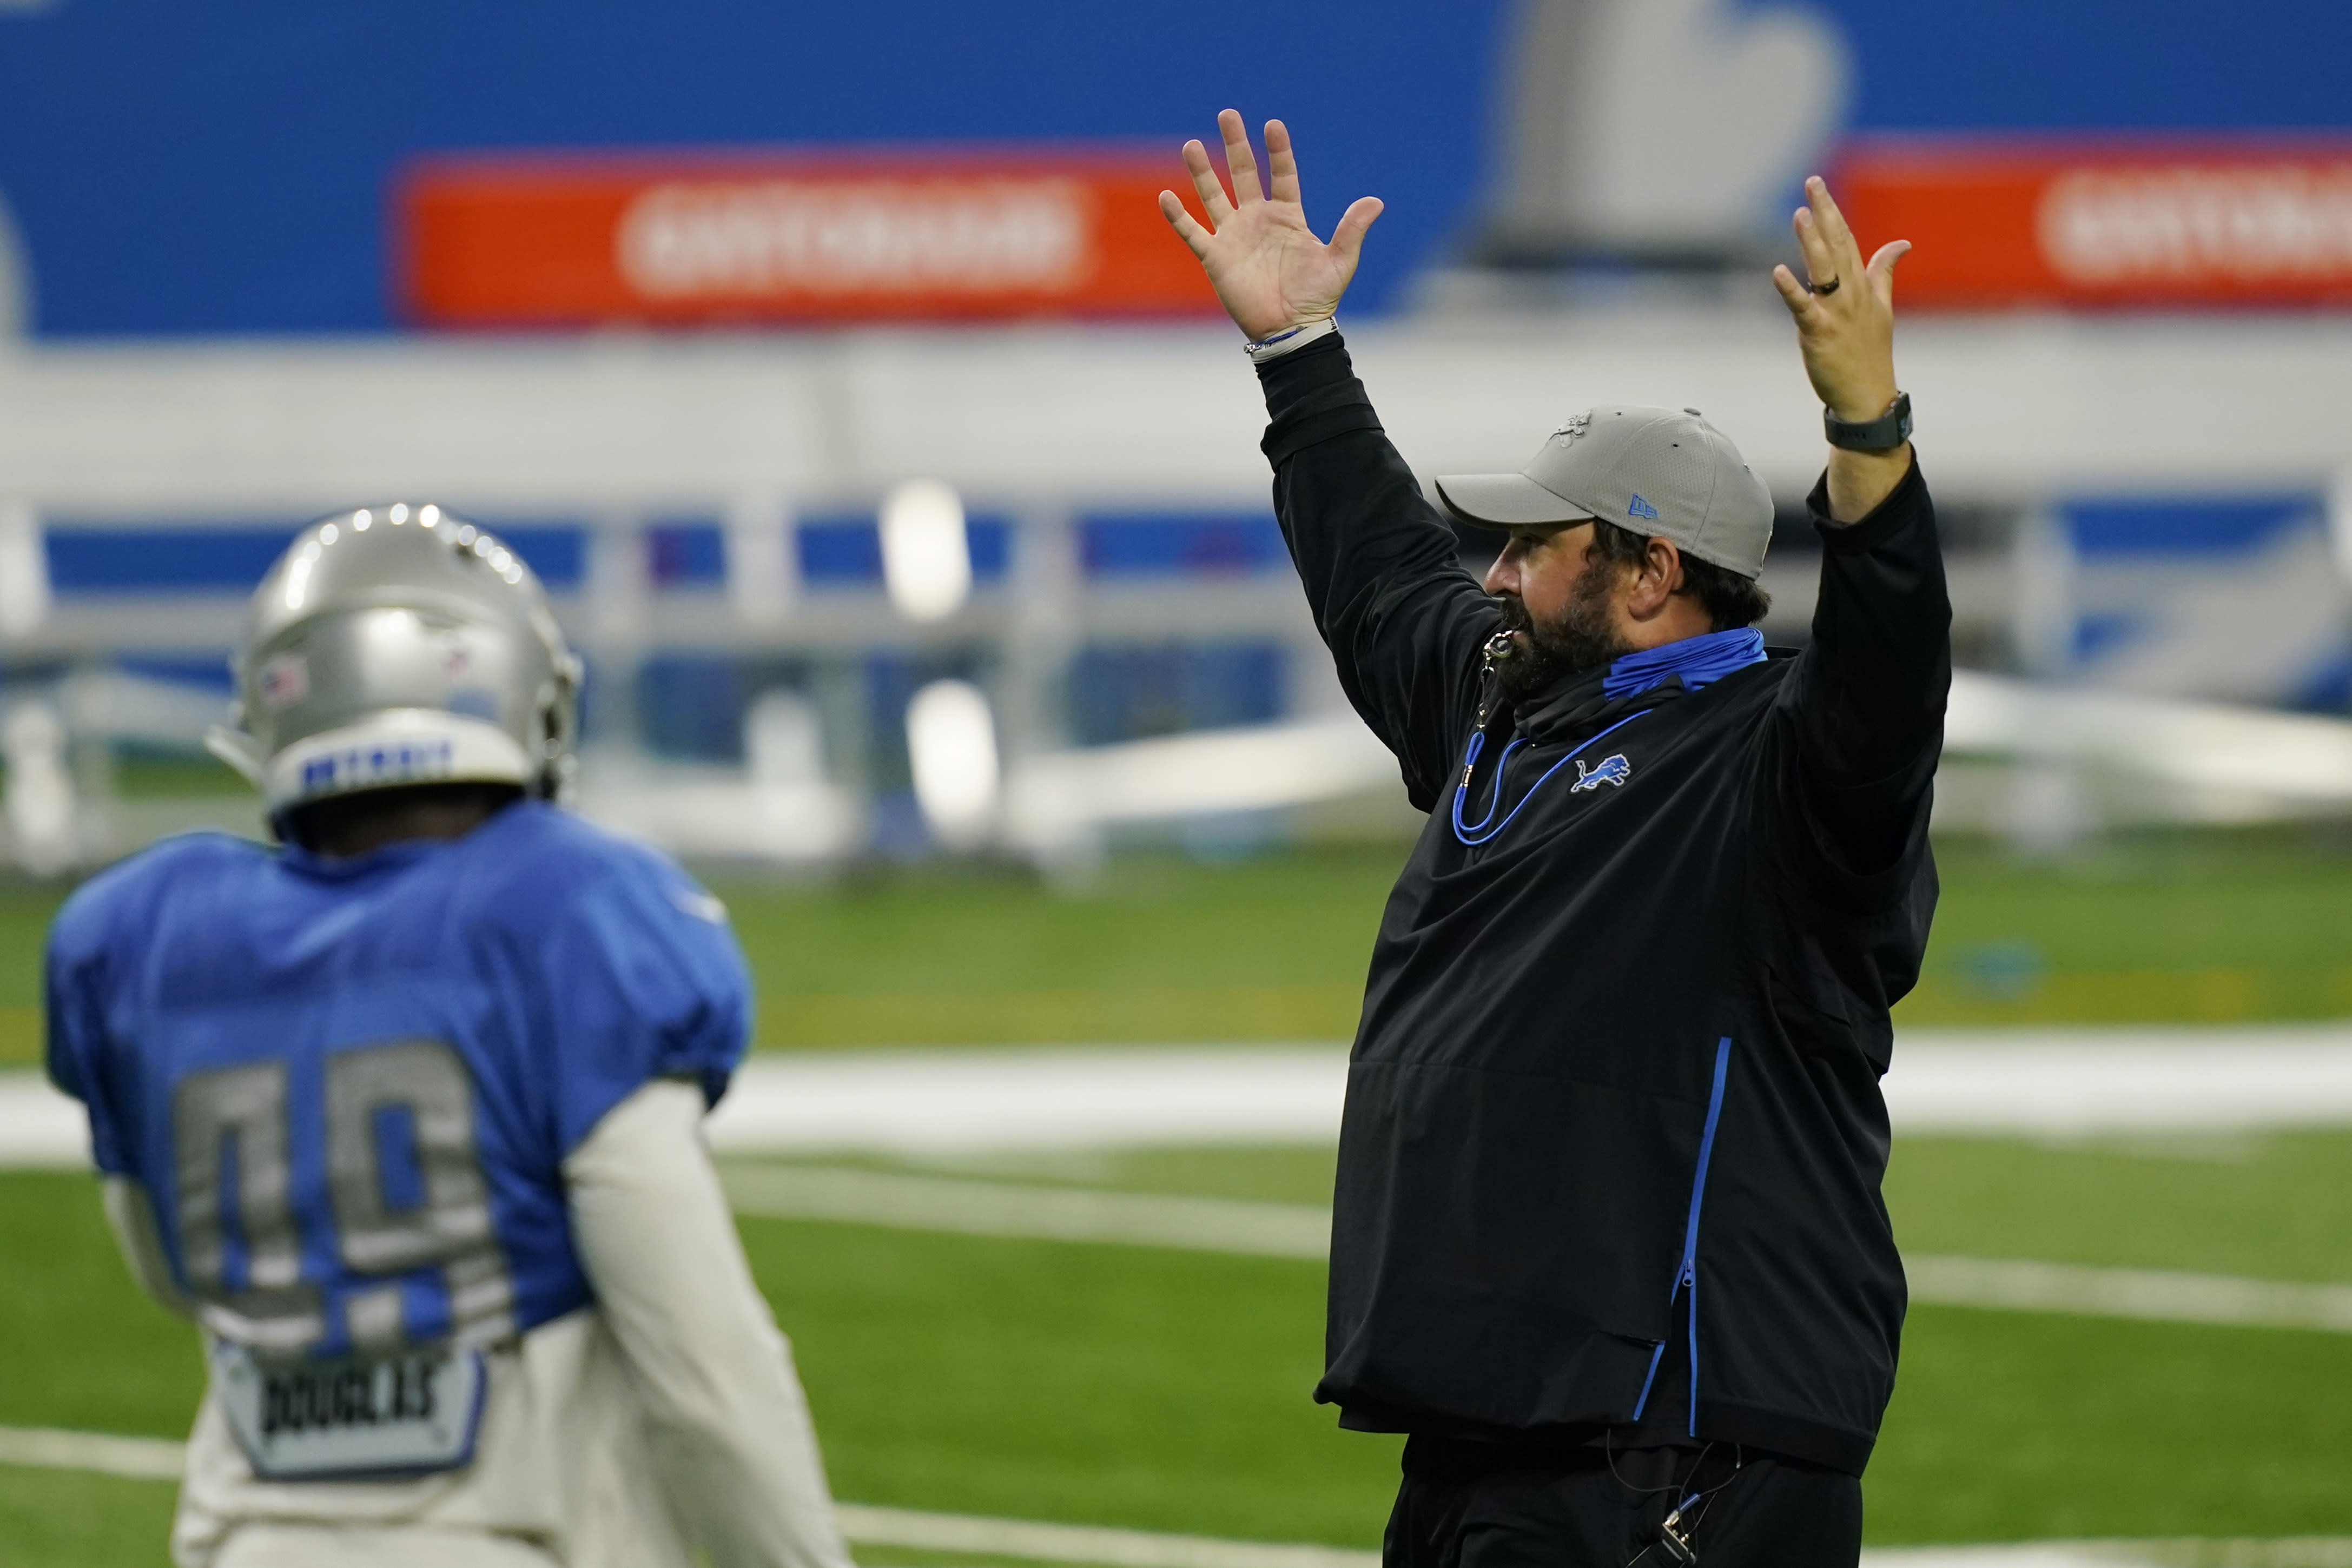 Detroit Lions head coach Matt Patricia calls for his team during drills at the Lions NFL football practice, Wednesday, Sept. 2, 2020, in Detroit. (AP Photo/Carlos Osorio)